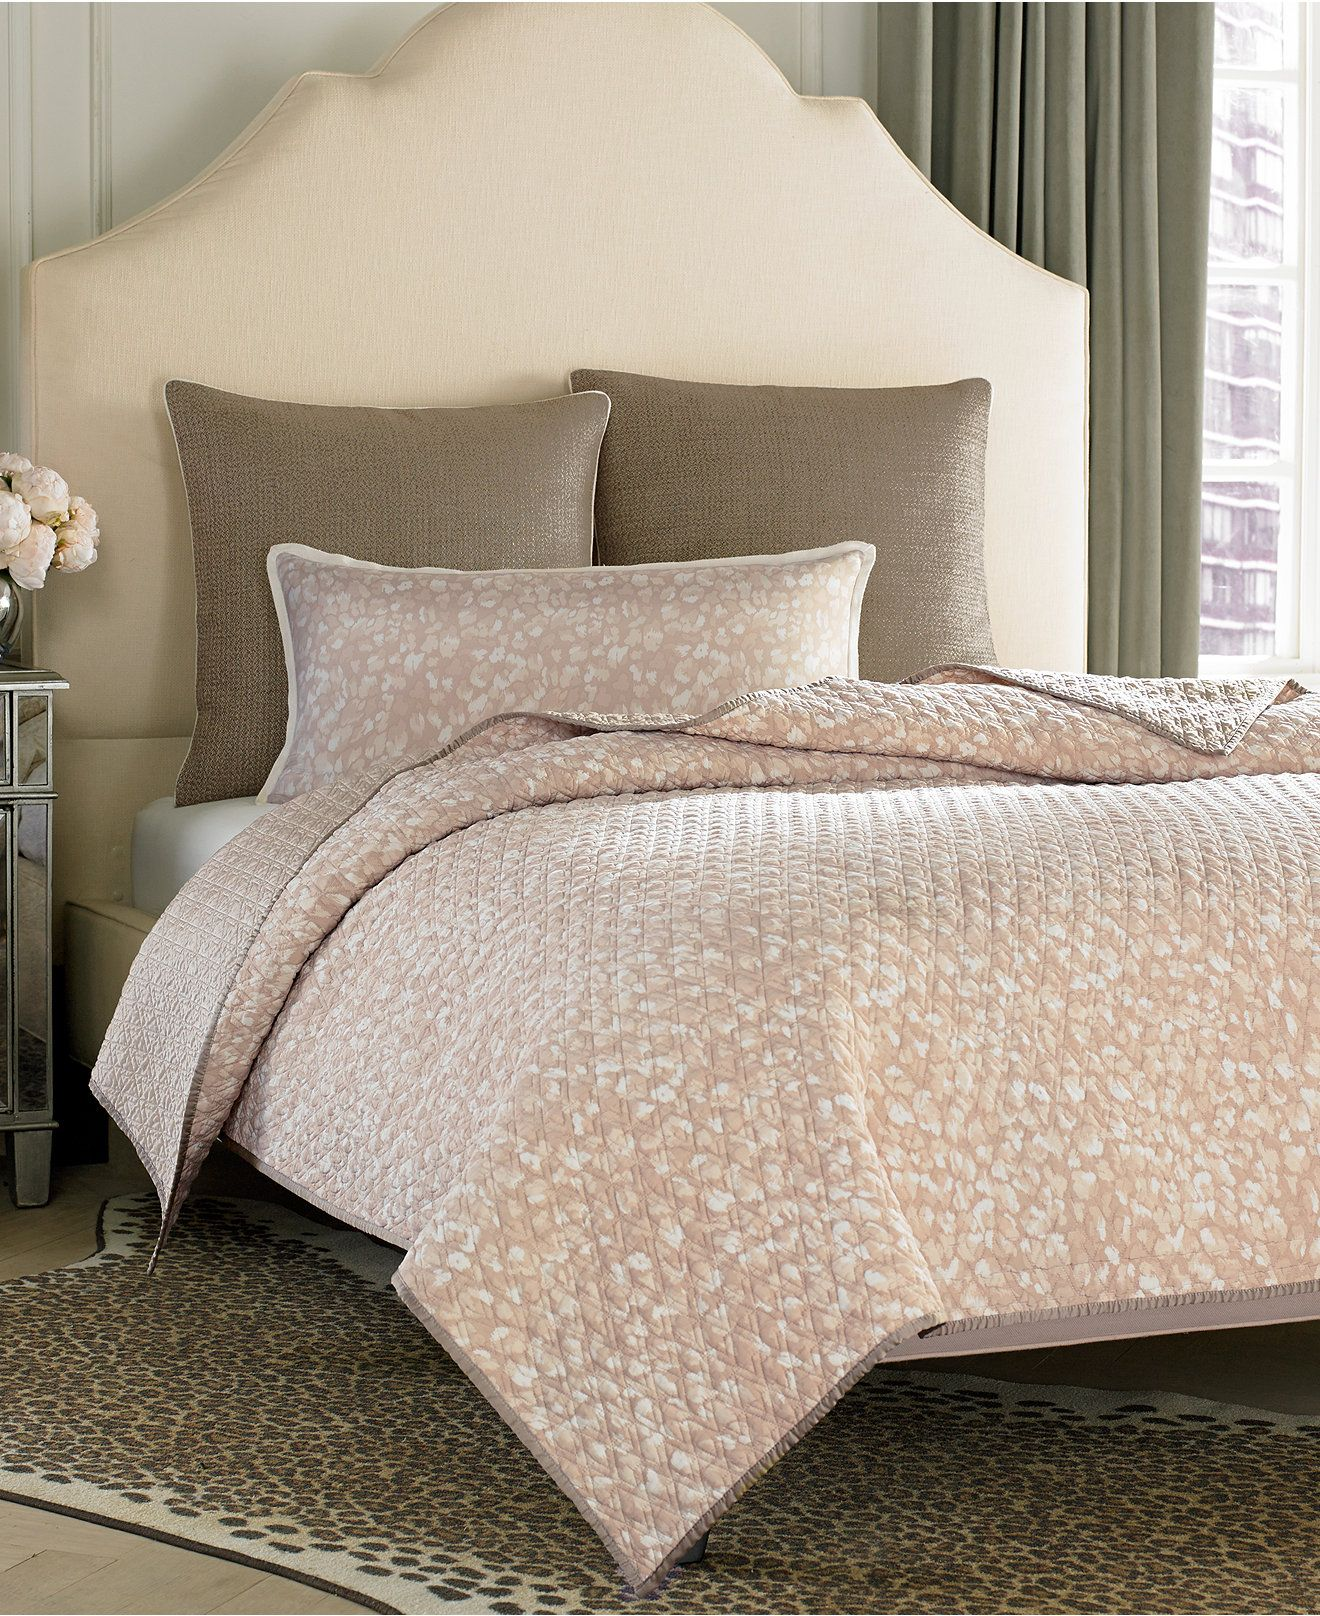 buenos bedding pillow vince std launches breakfast camuto h comforter slideshow aires